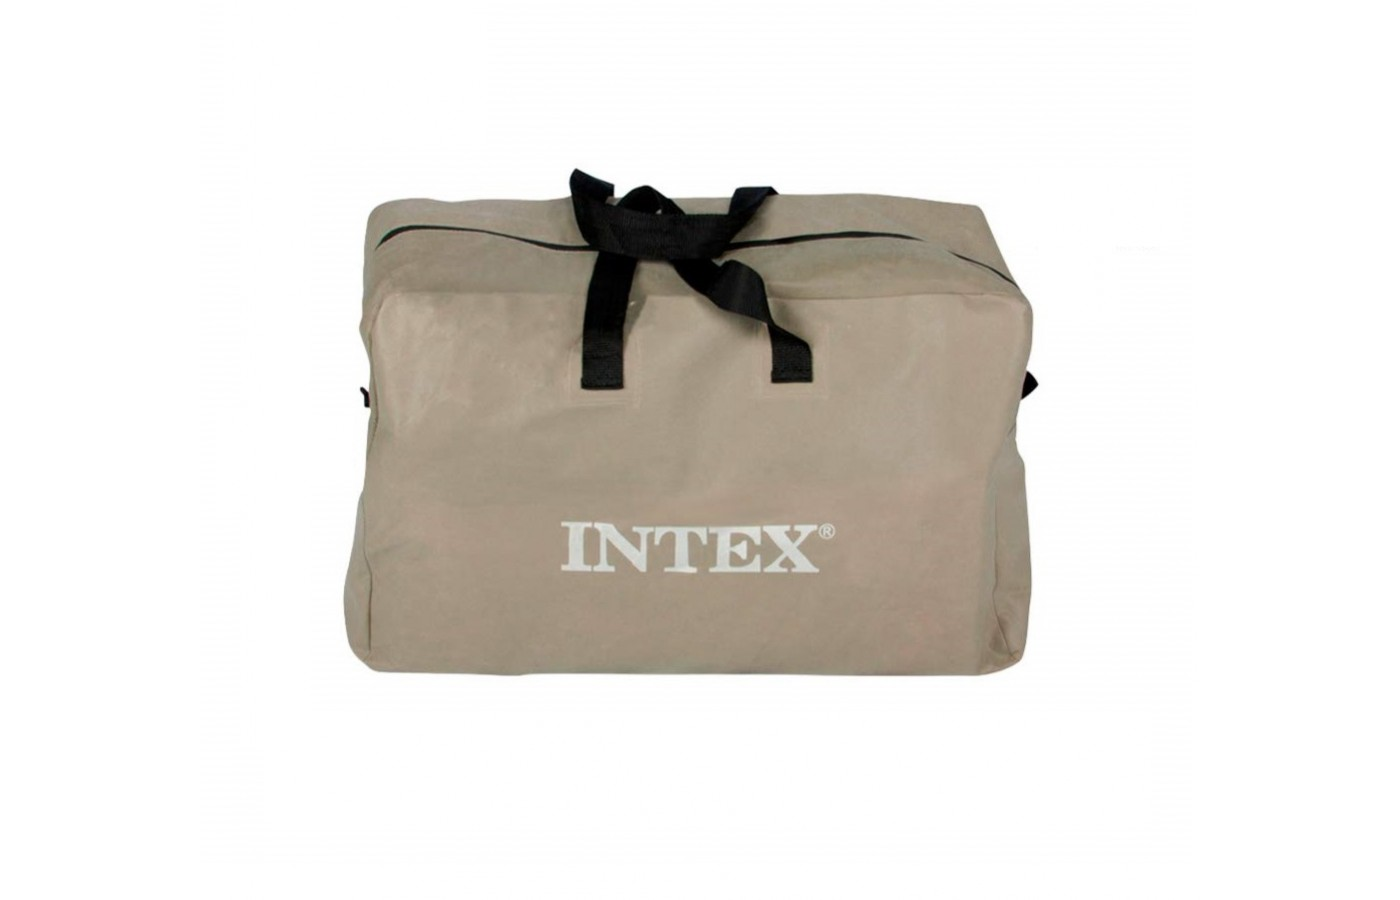 The Intex Challenger K2 Kayak easily folds up into a convenient carrying bag for easier transport.